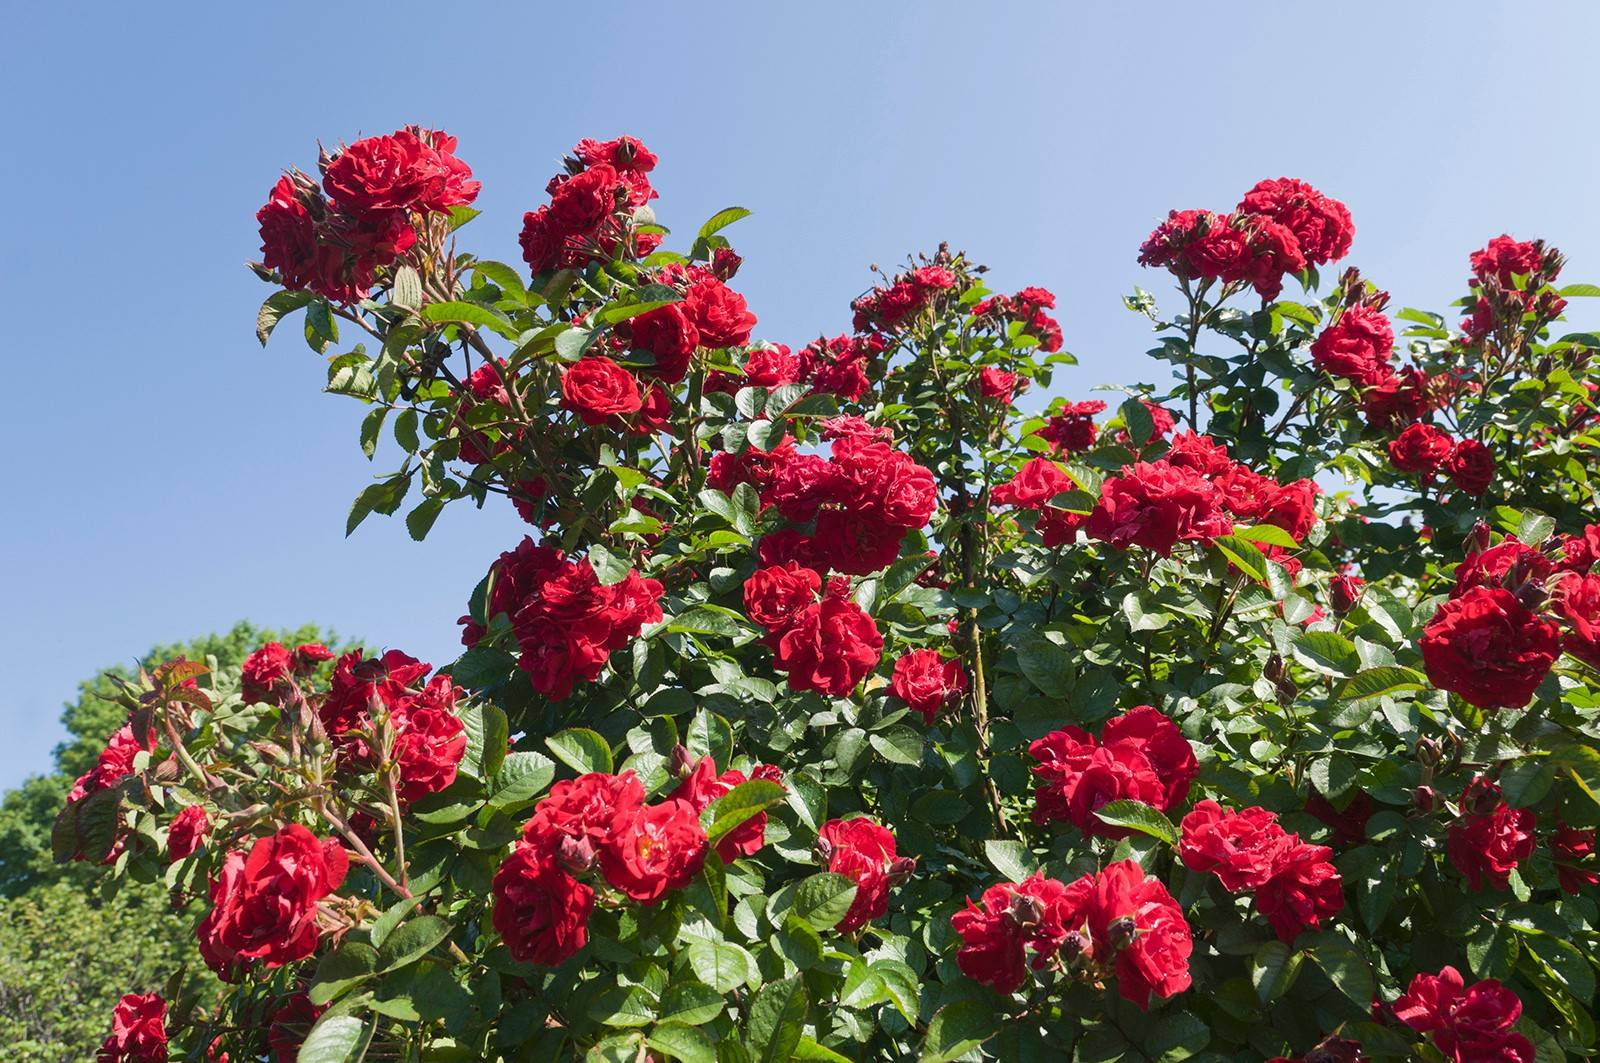 Rugosa roses (Rosa rugosa) should not be sprayed for black spot, as the fungicides can damage their foliage.